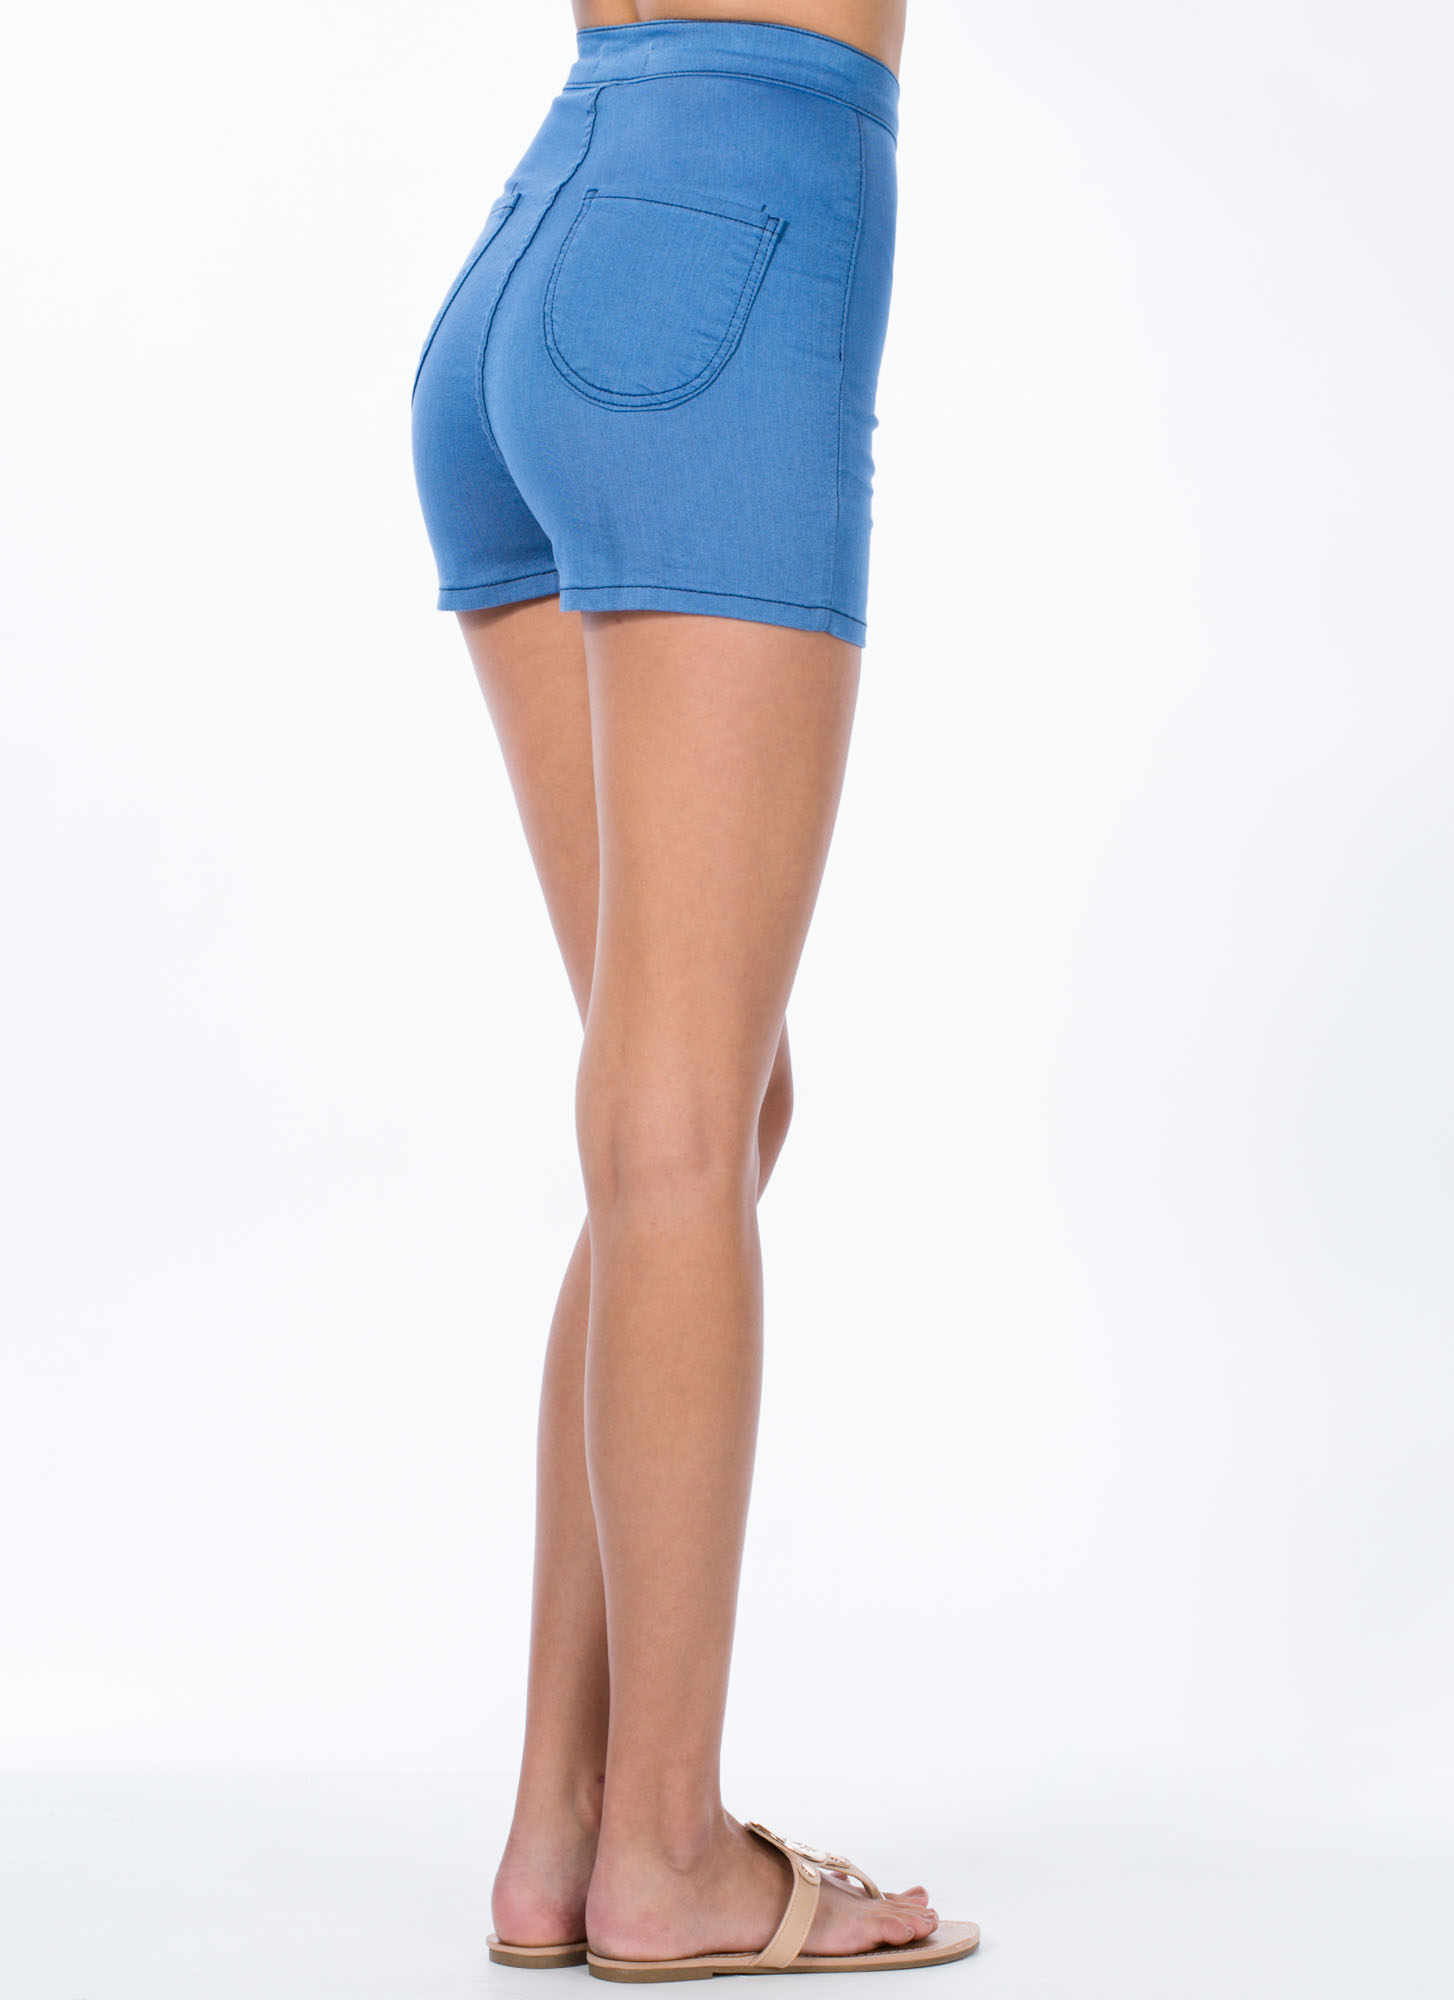 Solid Foundation High-Waisted Shorts MEDBLUE